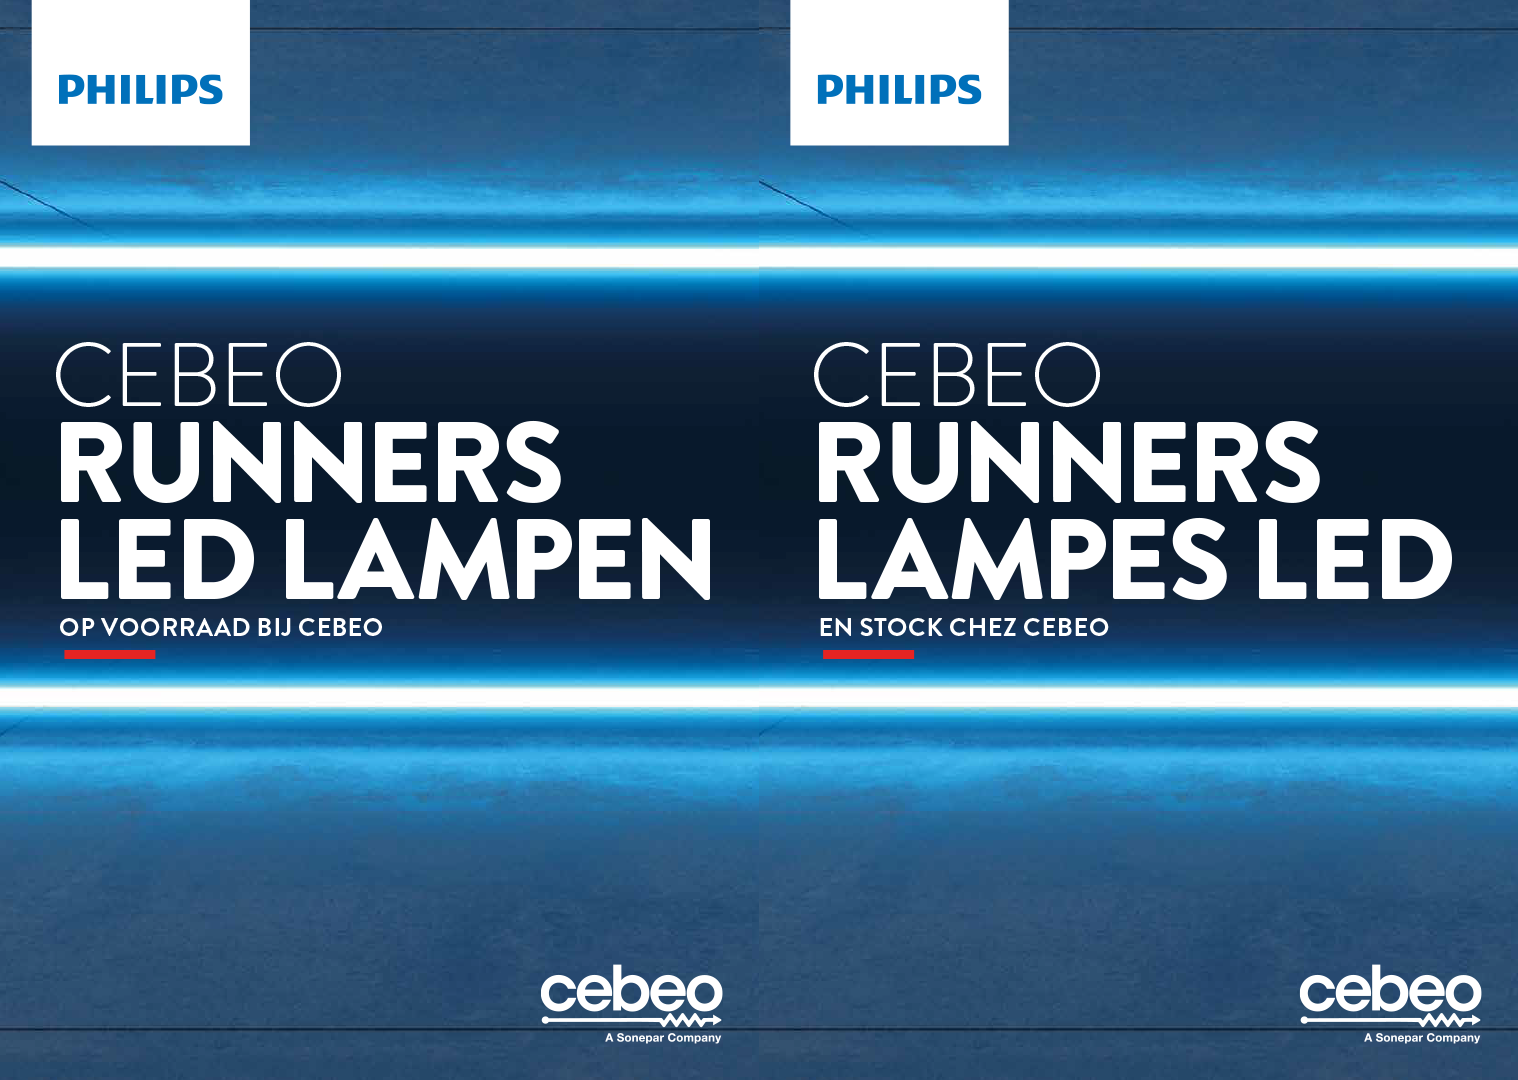 Cebeo runners lampes LED - Philips